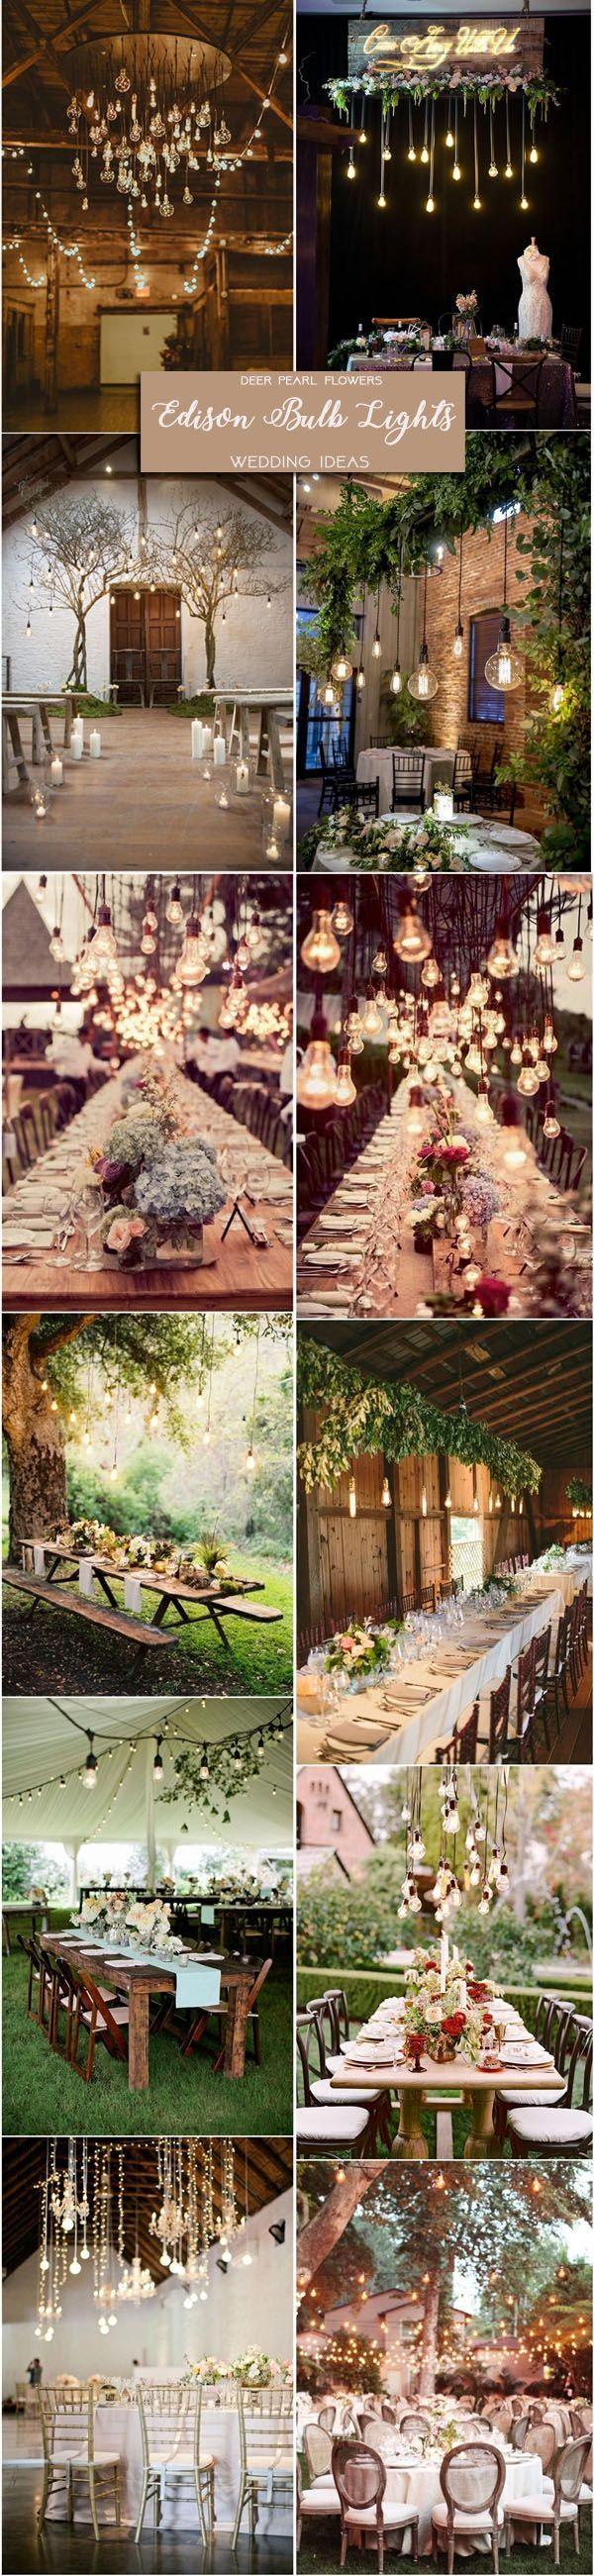 rustic wedding ideas edison bulb light wedding decor ideas / / http://www.deerpearlflowers.com/rustic-wedding-themes-ideas-part-2/